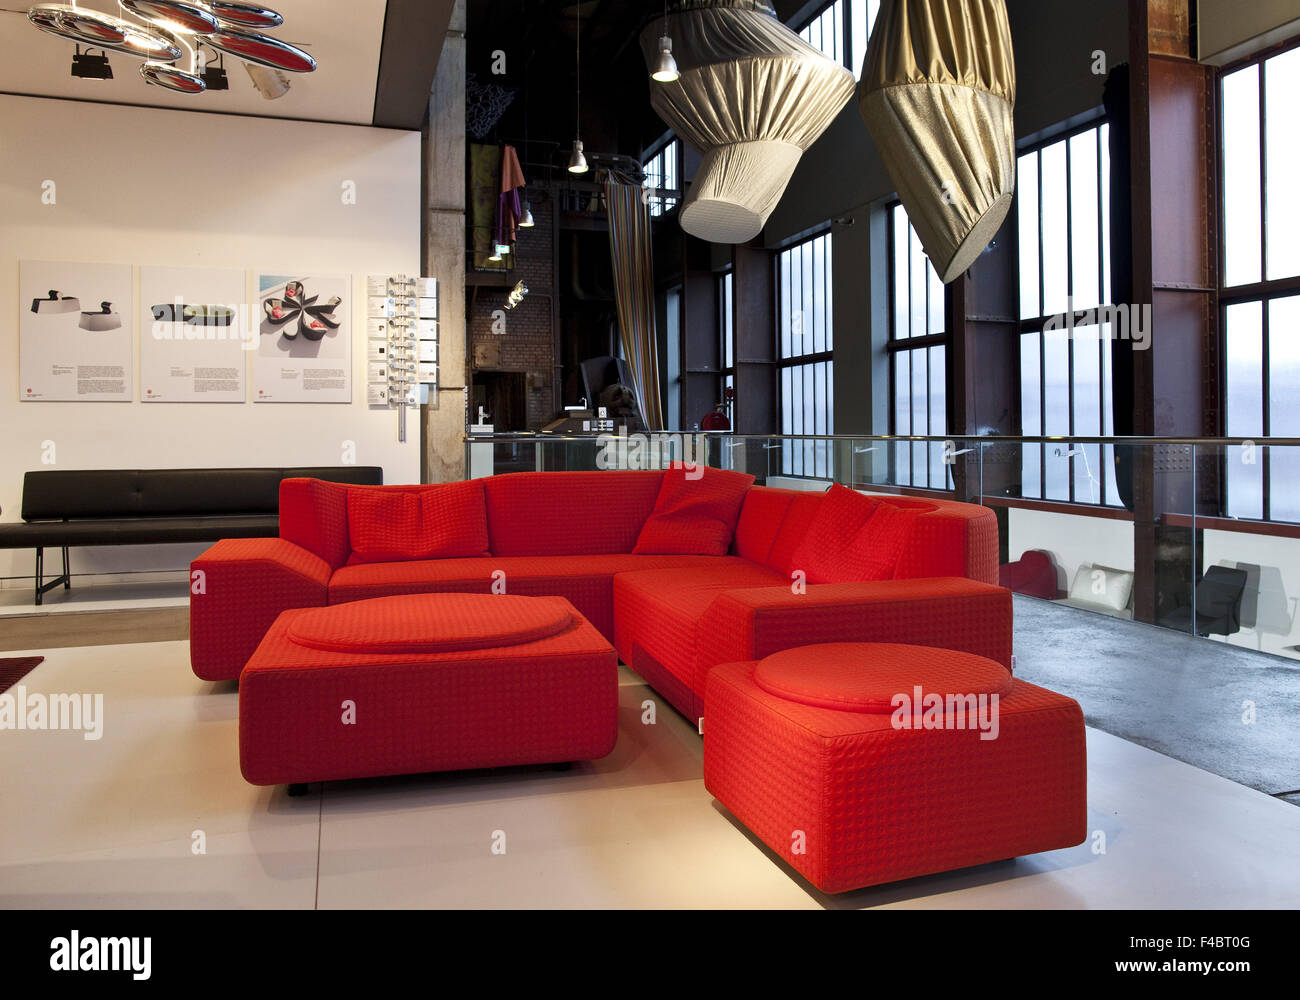 Red Dot Design Museum Zollverein Essen Stock Photo 88770768 Alamy